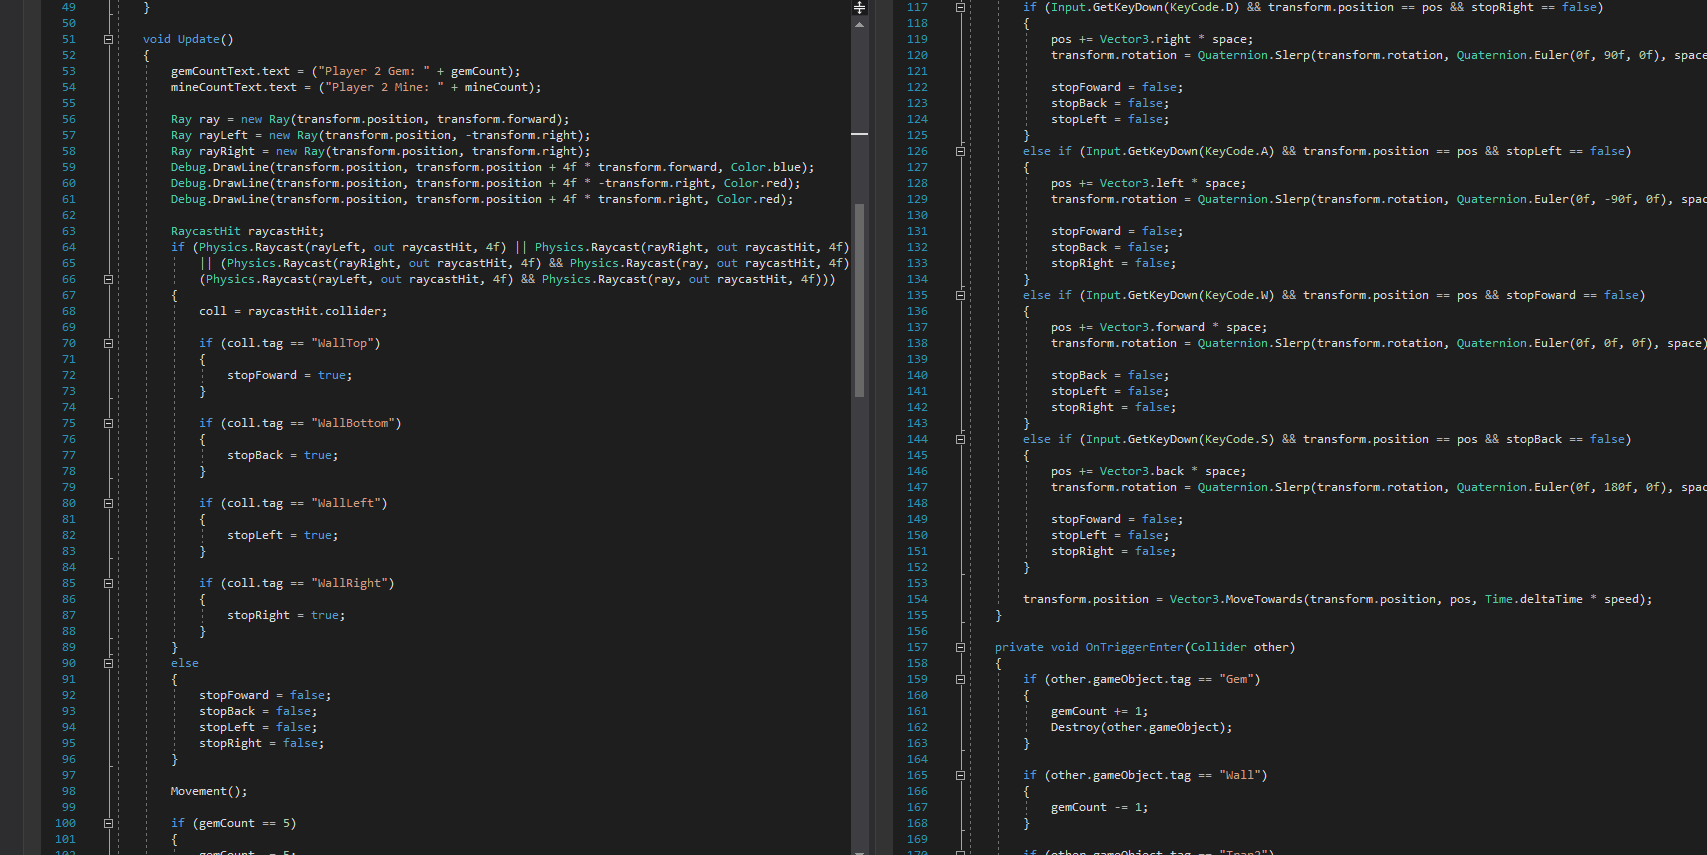 C# Scripts for Players